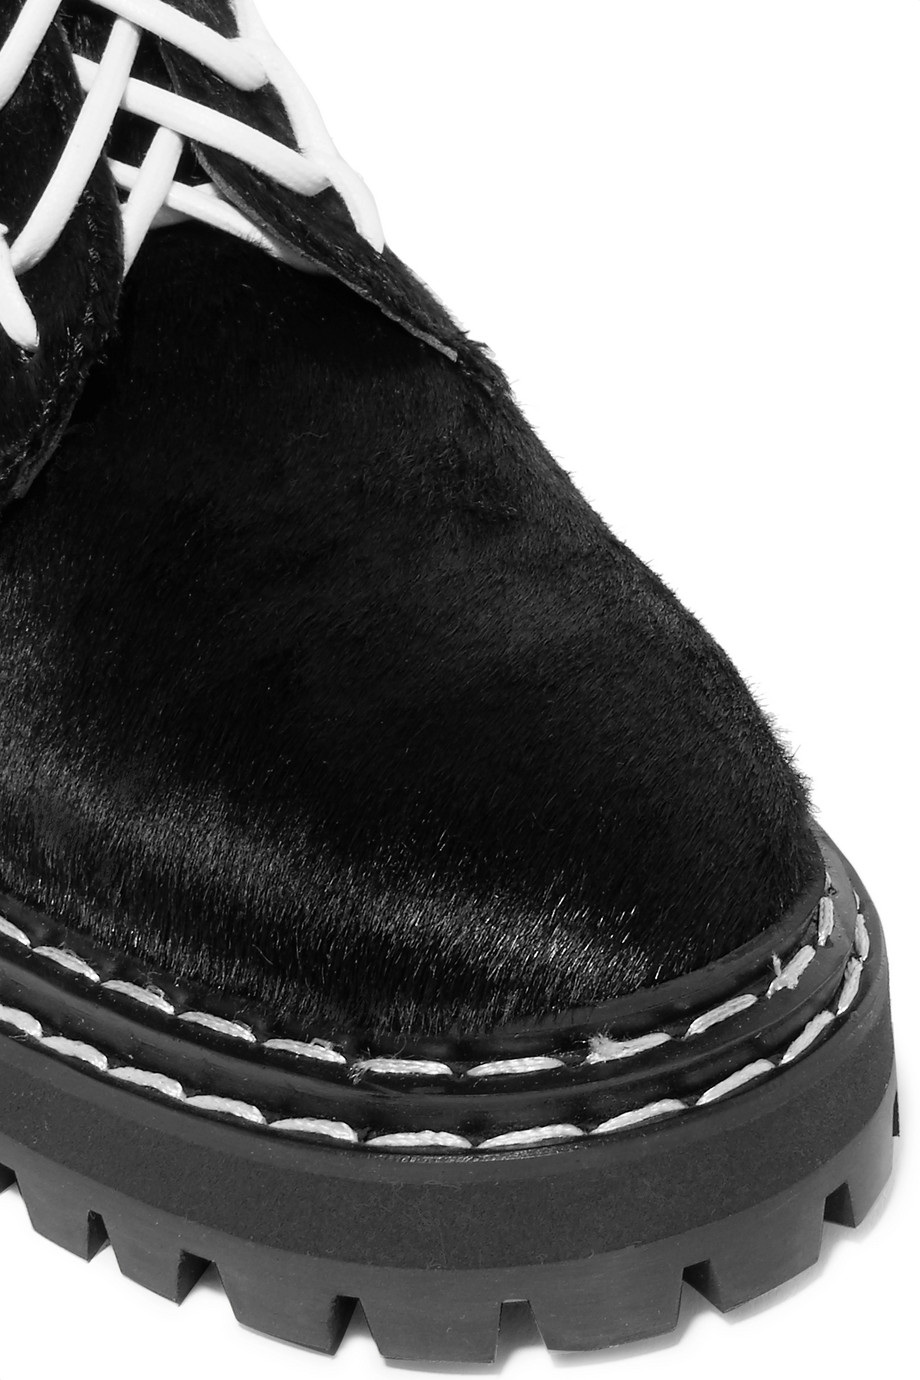 Ankle boots decorated Proenza Schouler buy Ankle boots decorated Proenza Schouler internet shop